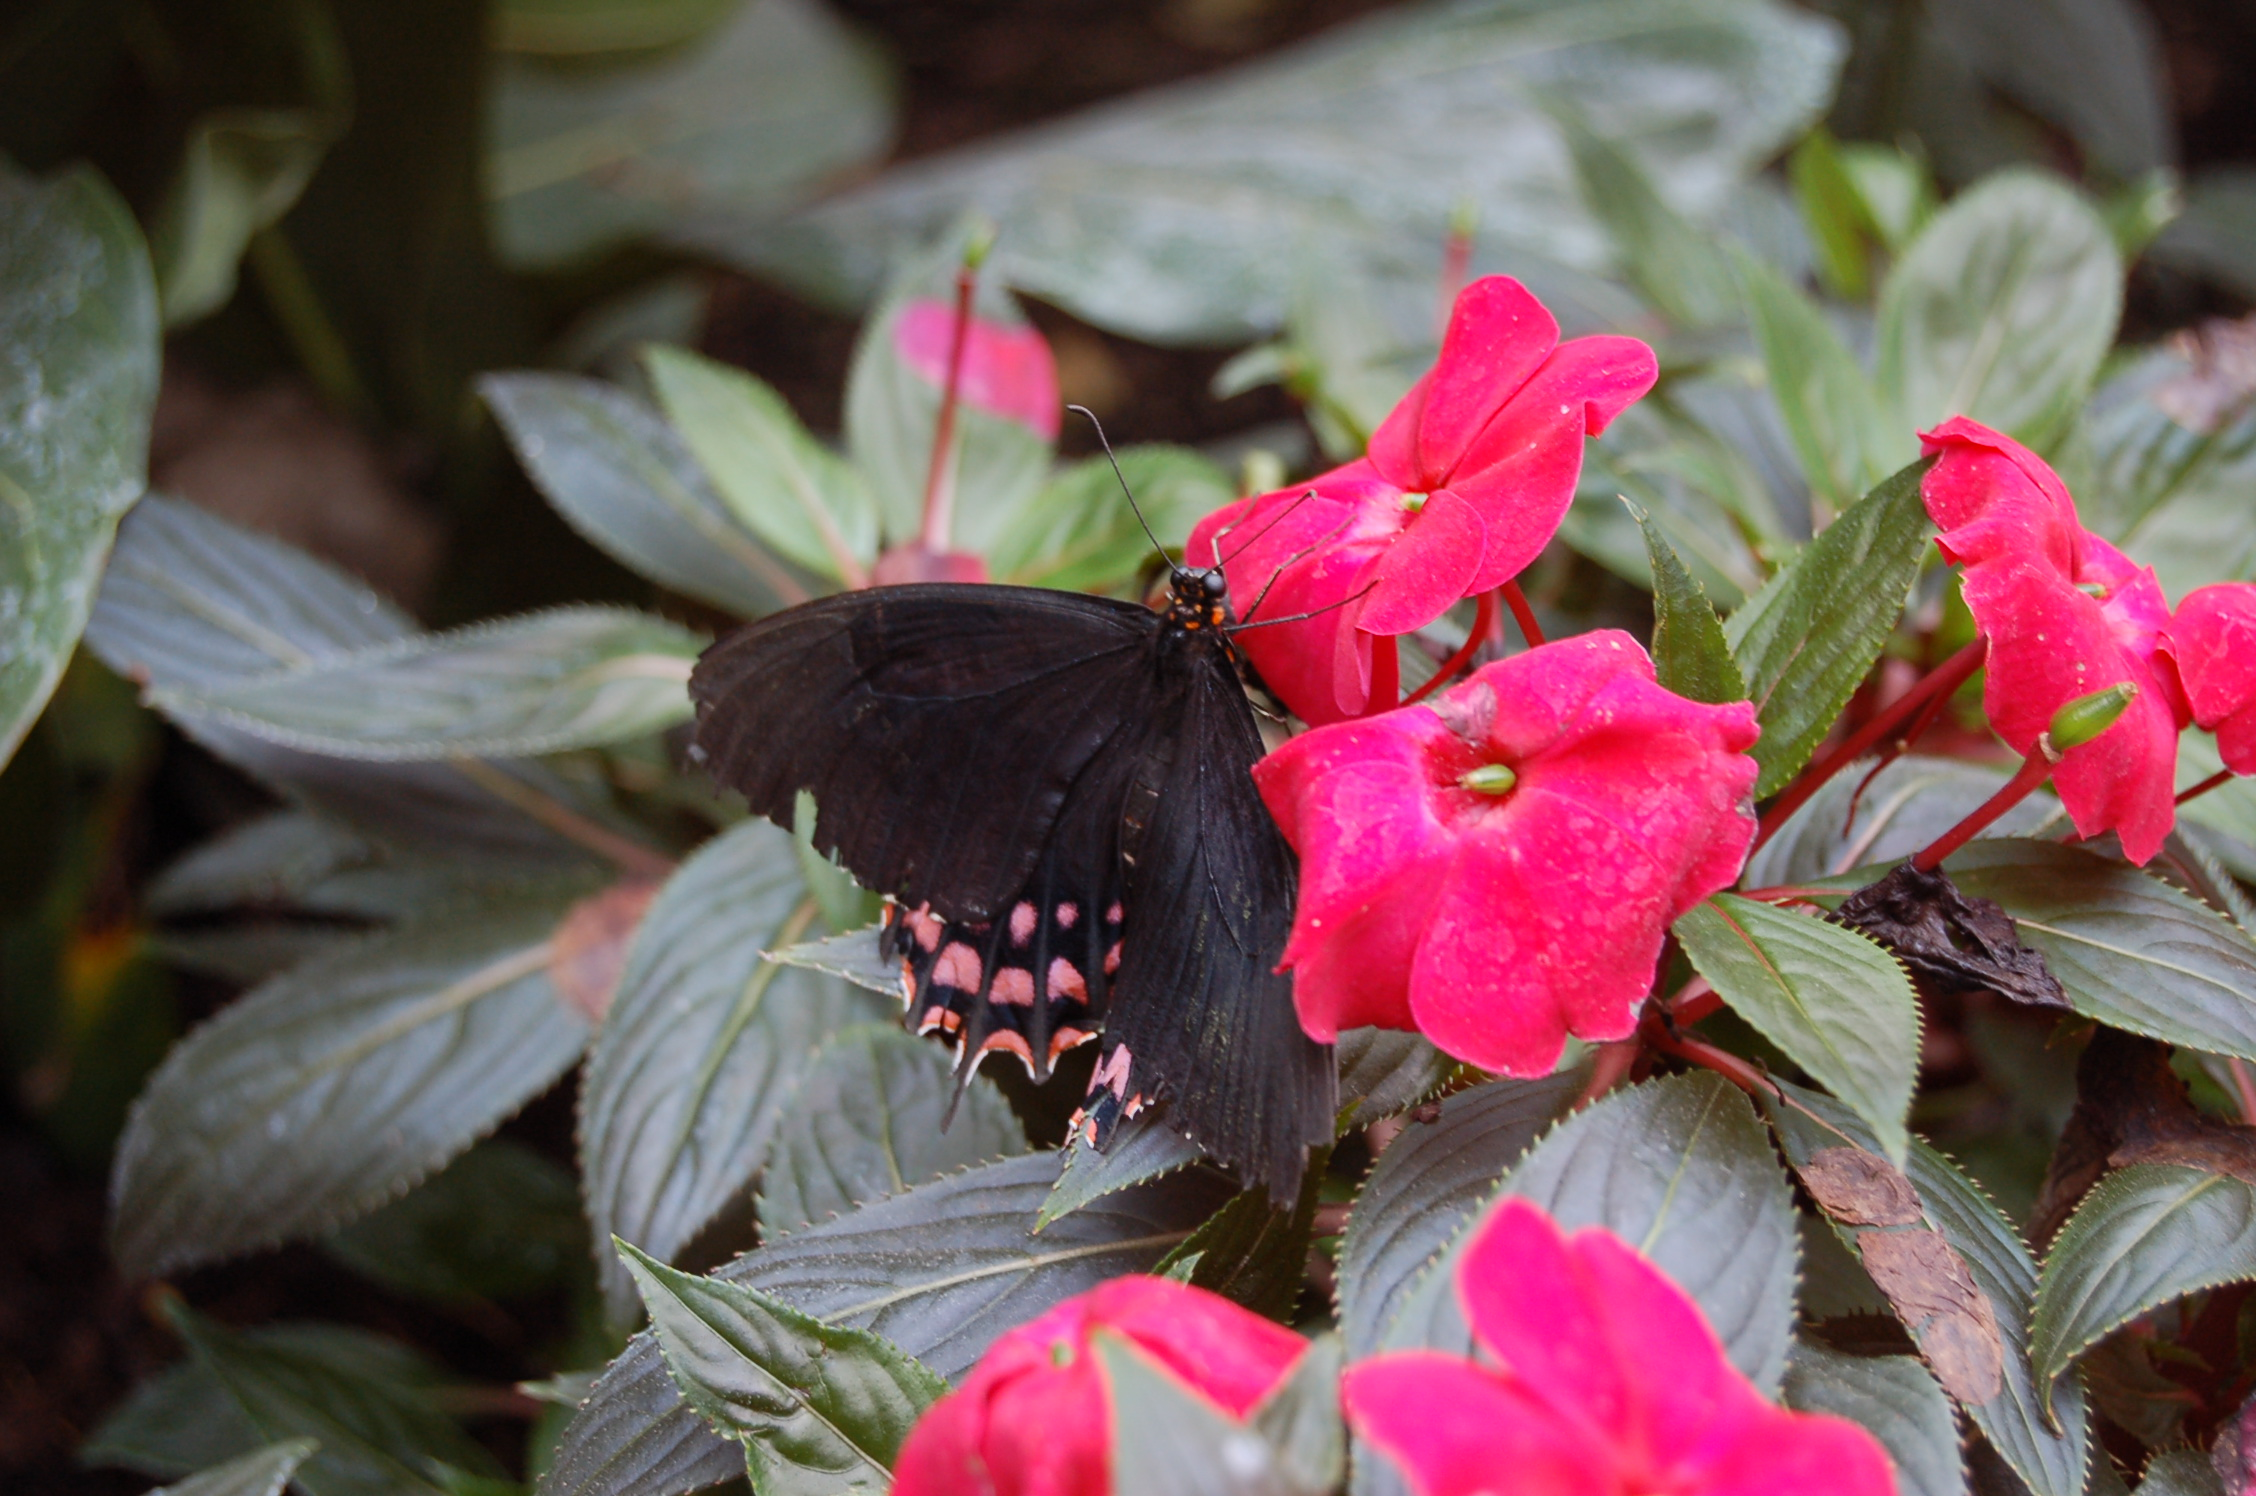 Some of the numerous butterflies we saw